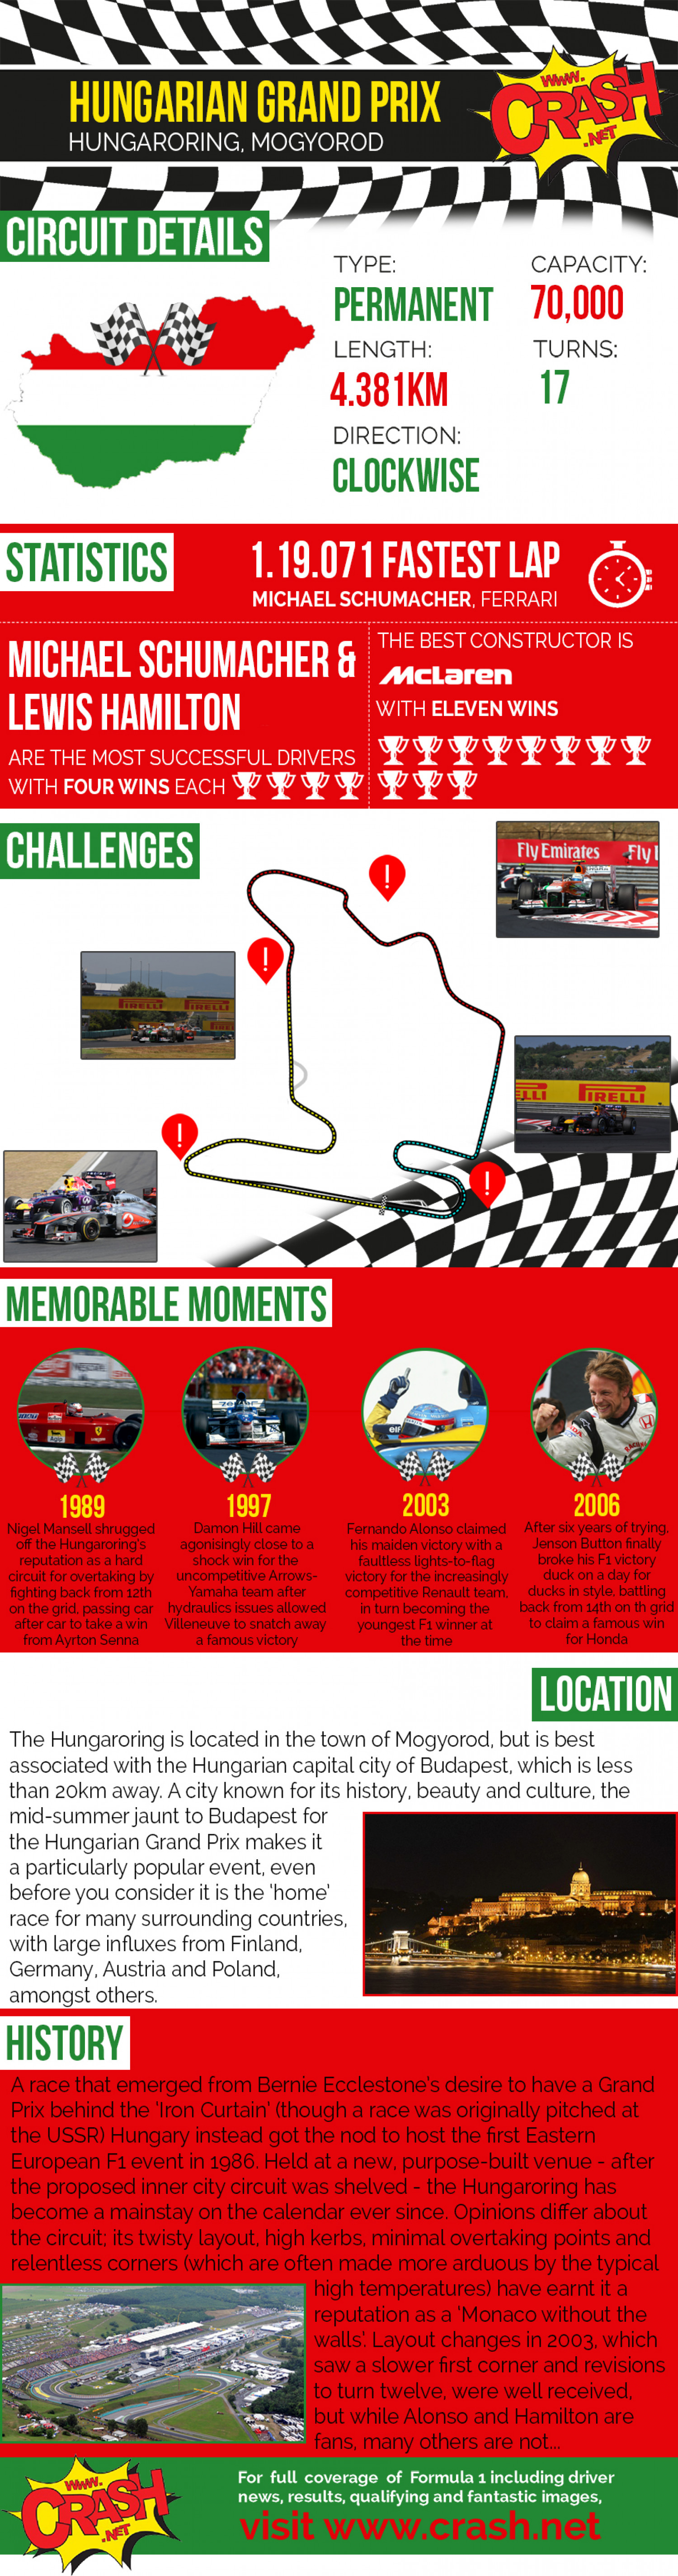 Hungarian Grand Prix Infographic